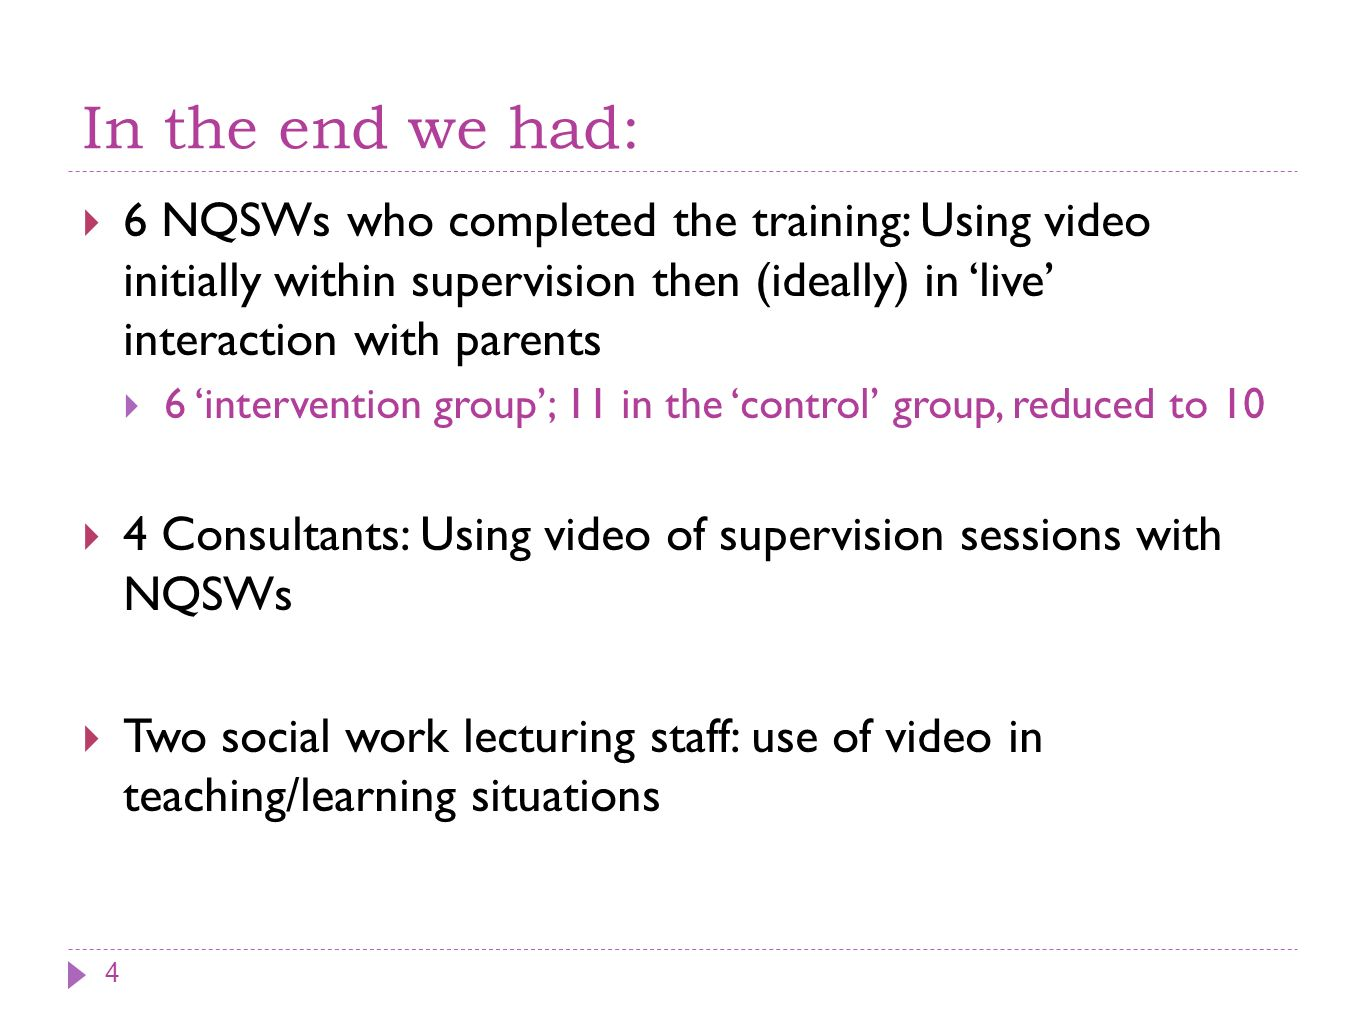 In the end we had: 6 NQSWs who completed the training: Using video initially within supervision then (ideally) in live interaction with parents 6 intervention group; 11 in the control group, reduced to 10 4 Consultants: Using video of supervision sessions with NQSWs Two social work lecturing staff: use of video in teaching/learning situations 4